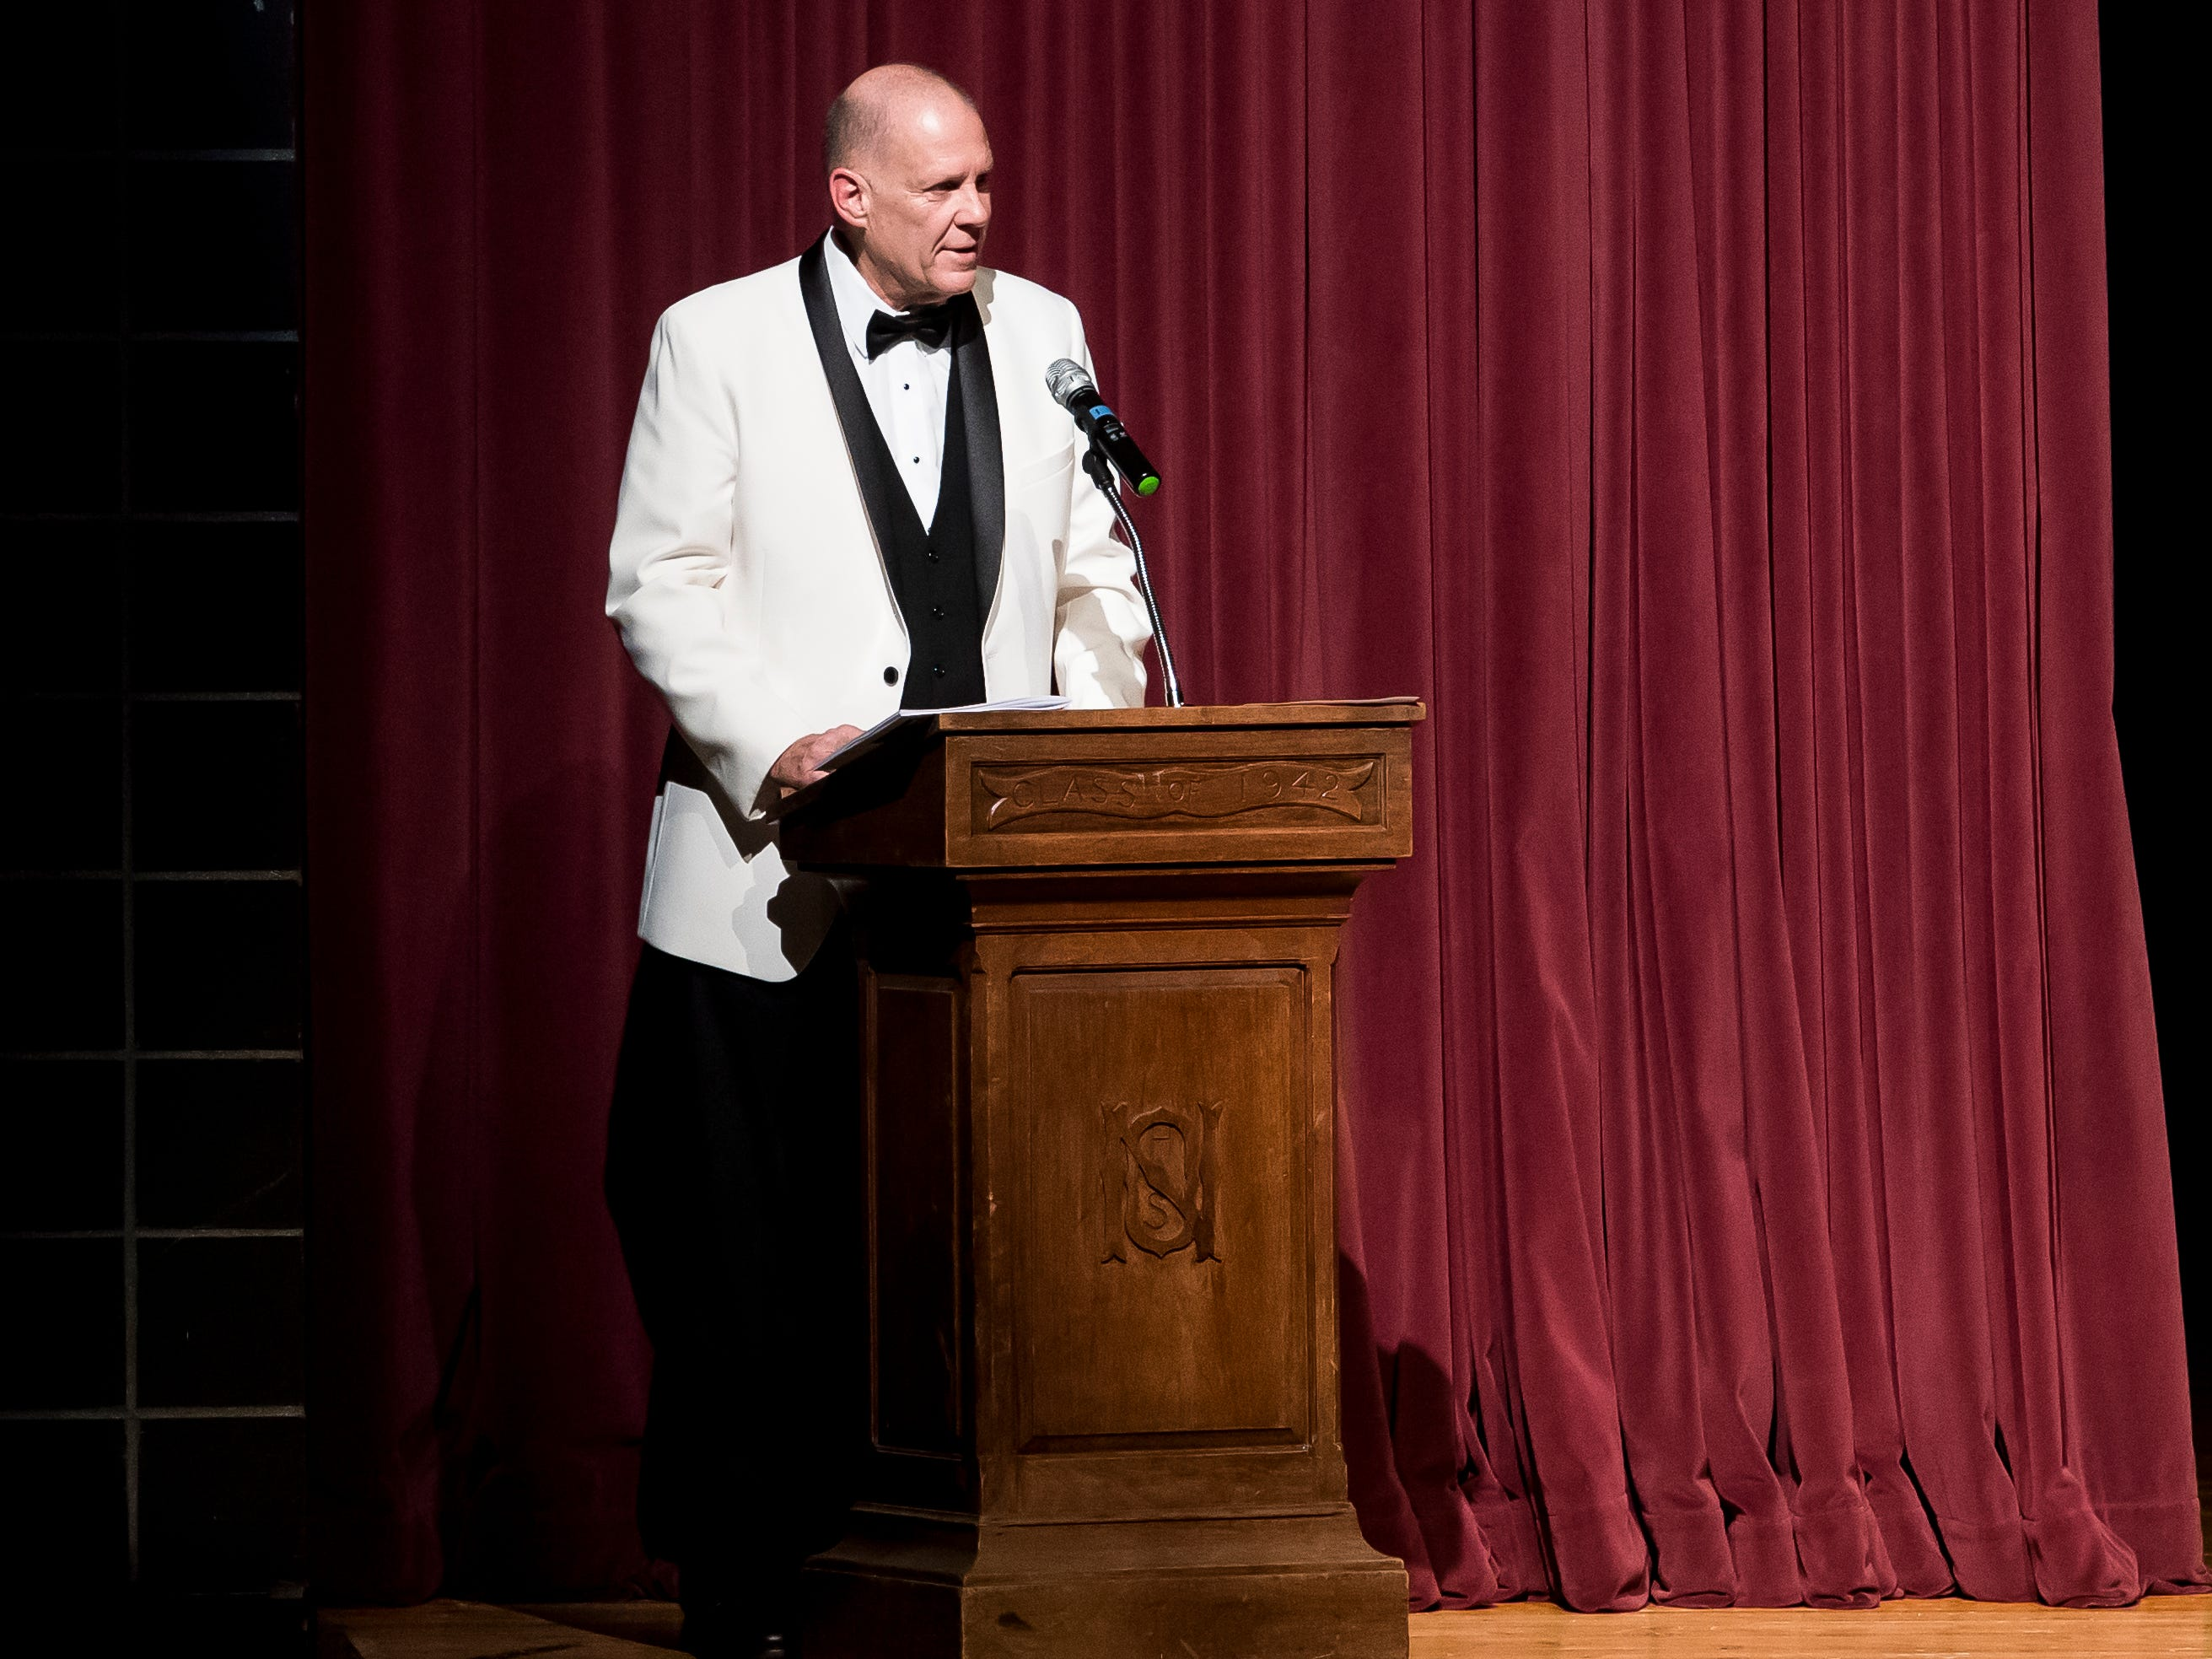 Mike Mummert serves as the master of ceremonies at the 50th Miss Hanover Area pageant on Monday, October 22, 2018.